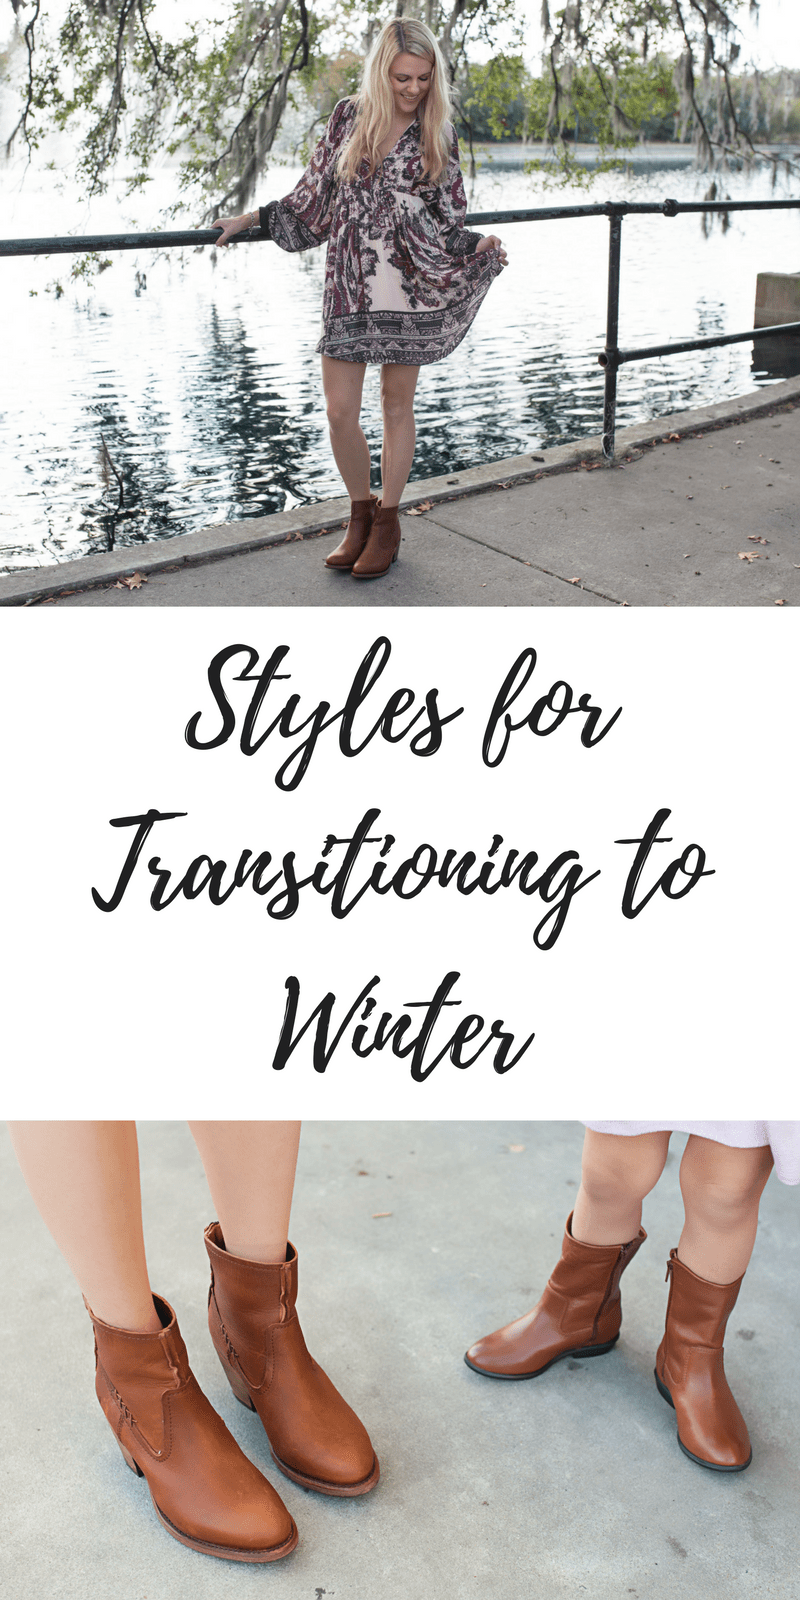 styles-fortransitiong-towinter1